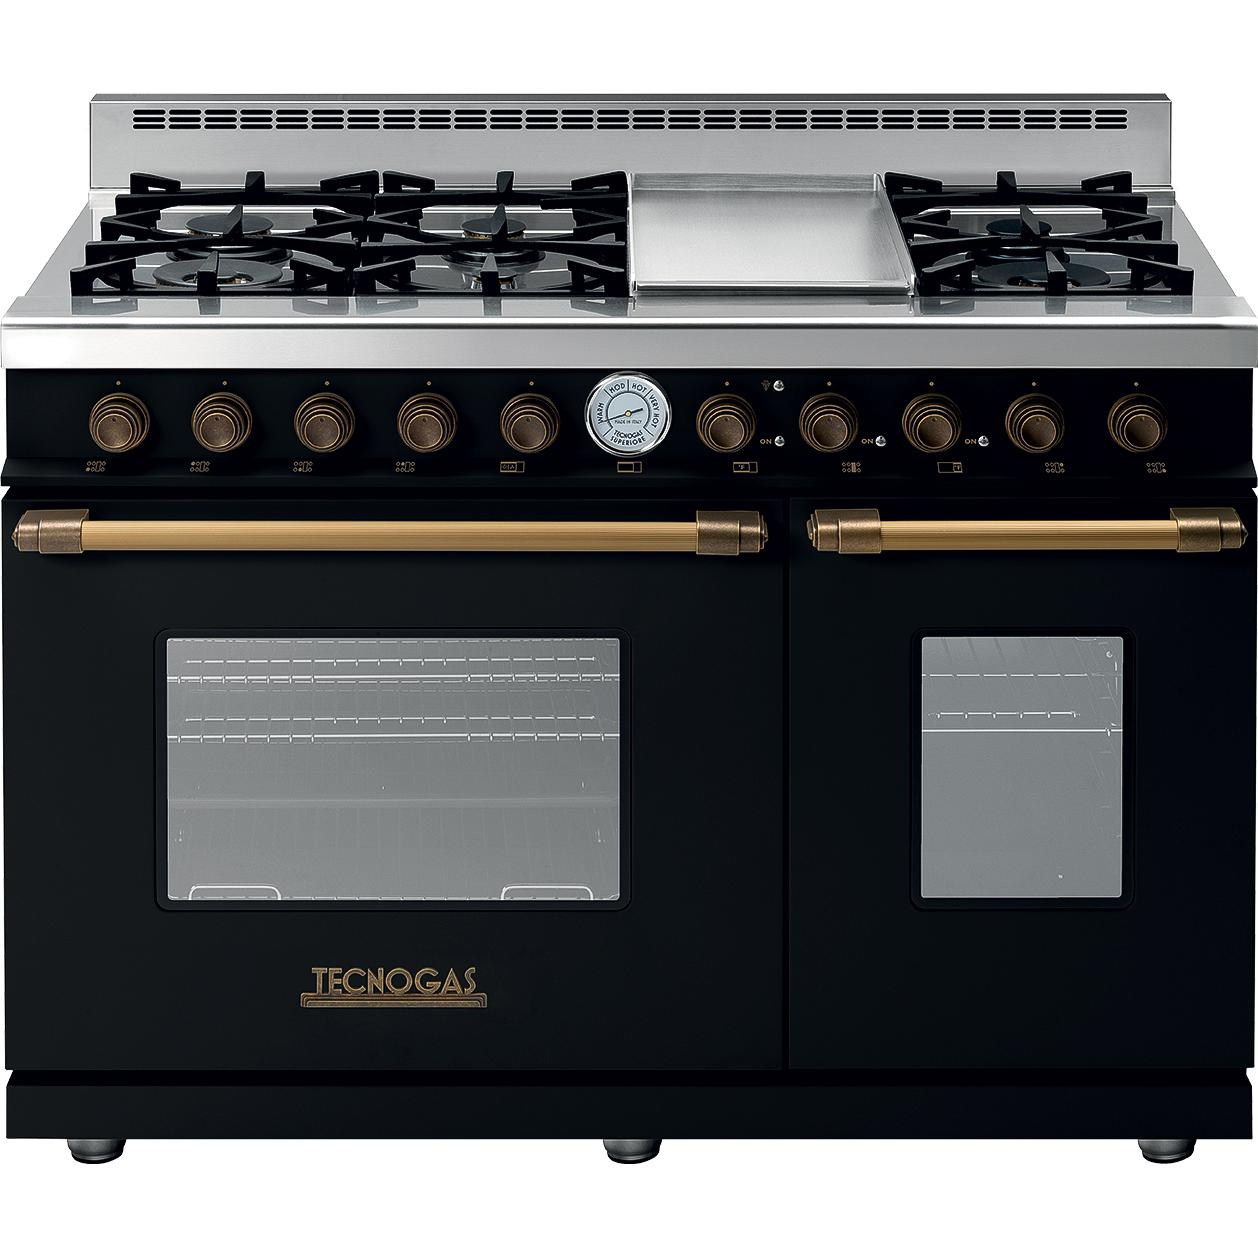 Tecnogas Superiore 48 Inch Deco Natural Gas Range With 6 Burners Griddle Black Br Rd482gcn B